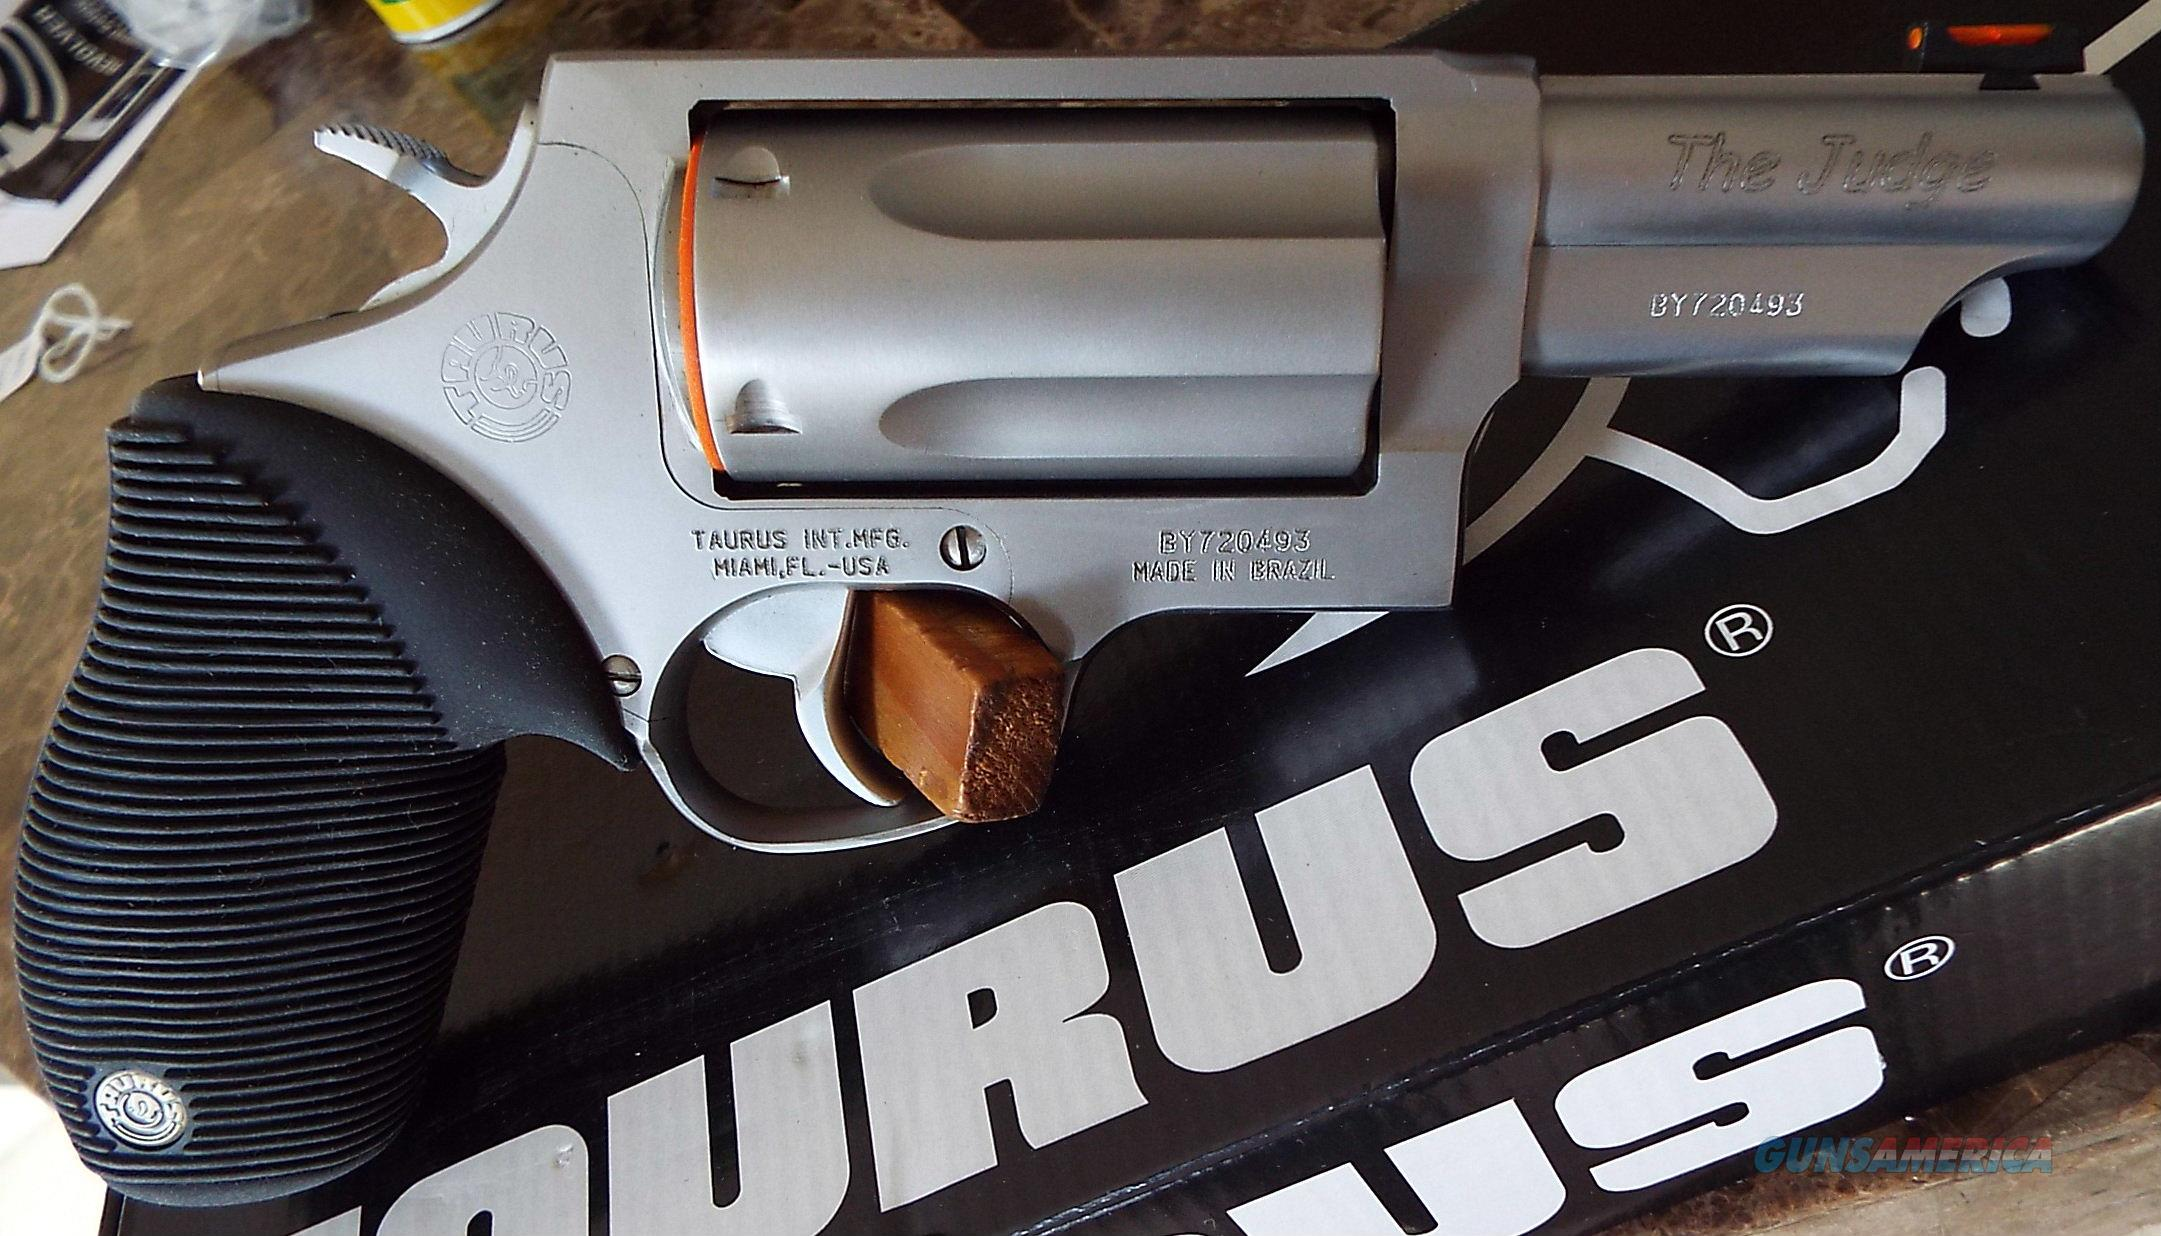 taurus judge 4410 stainless 45 lc 410 ga for sale